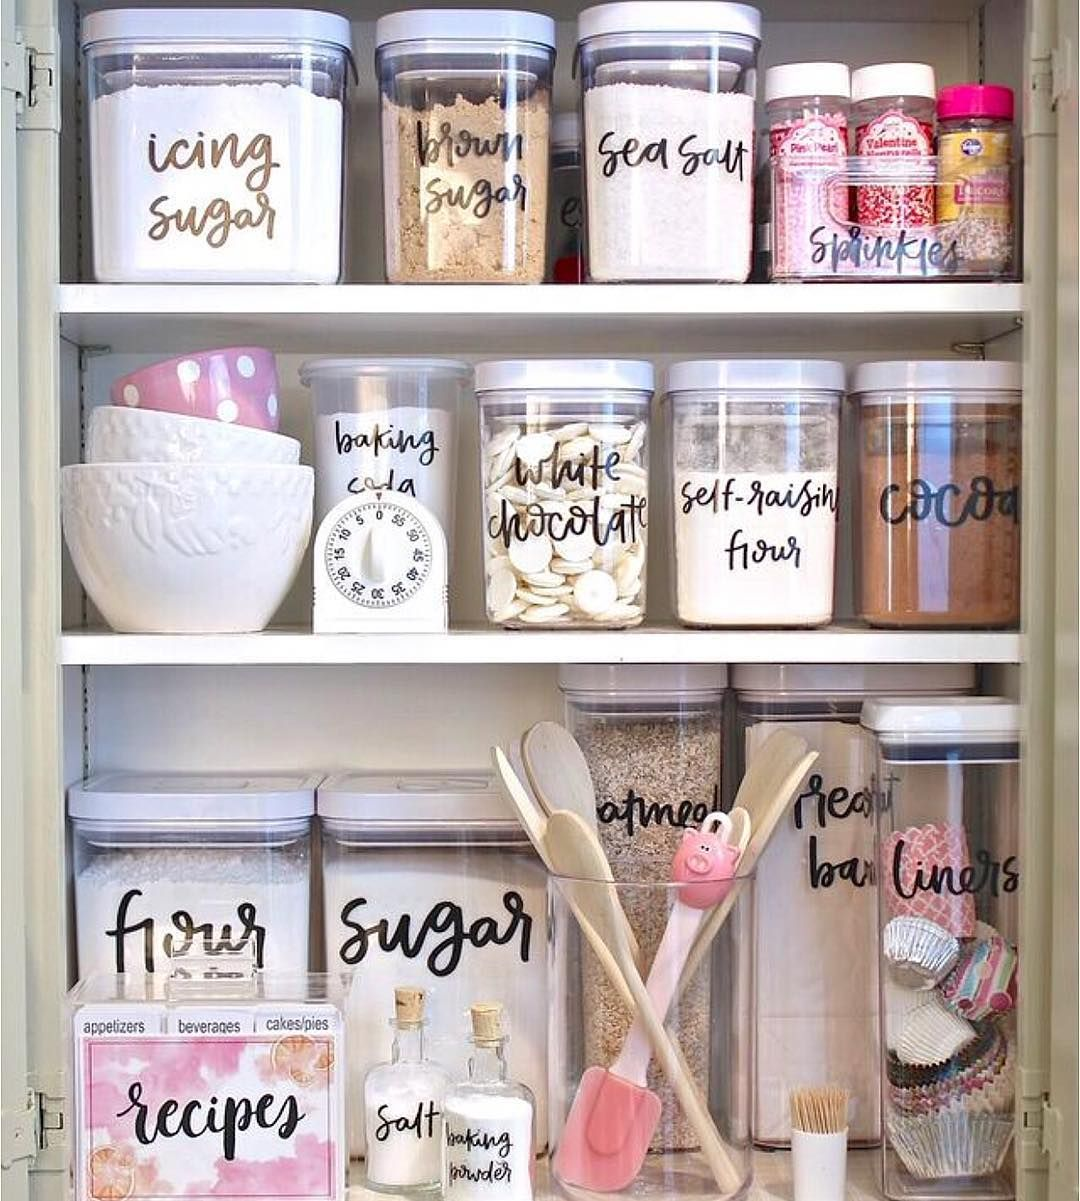 If You Have A Small Pantry Area Pulling Out All The